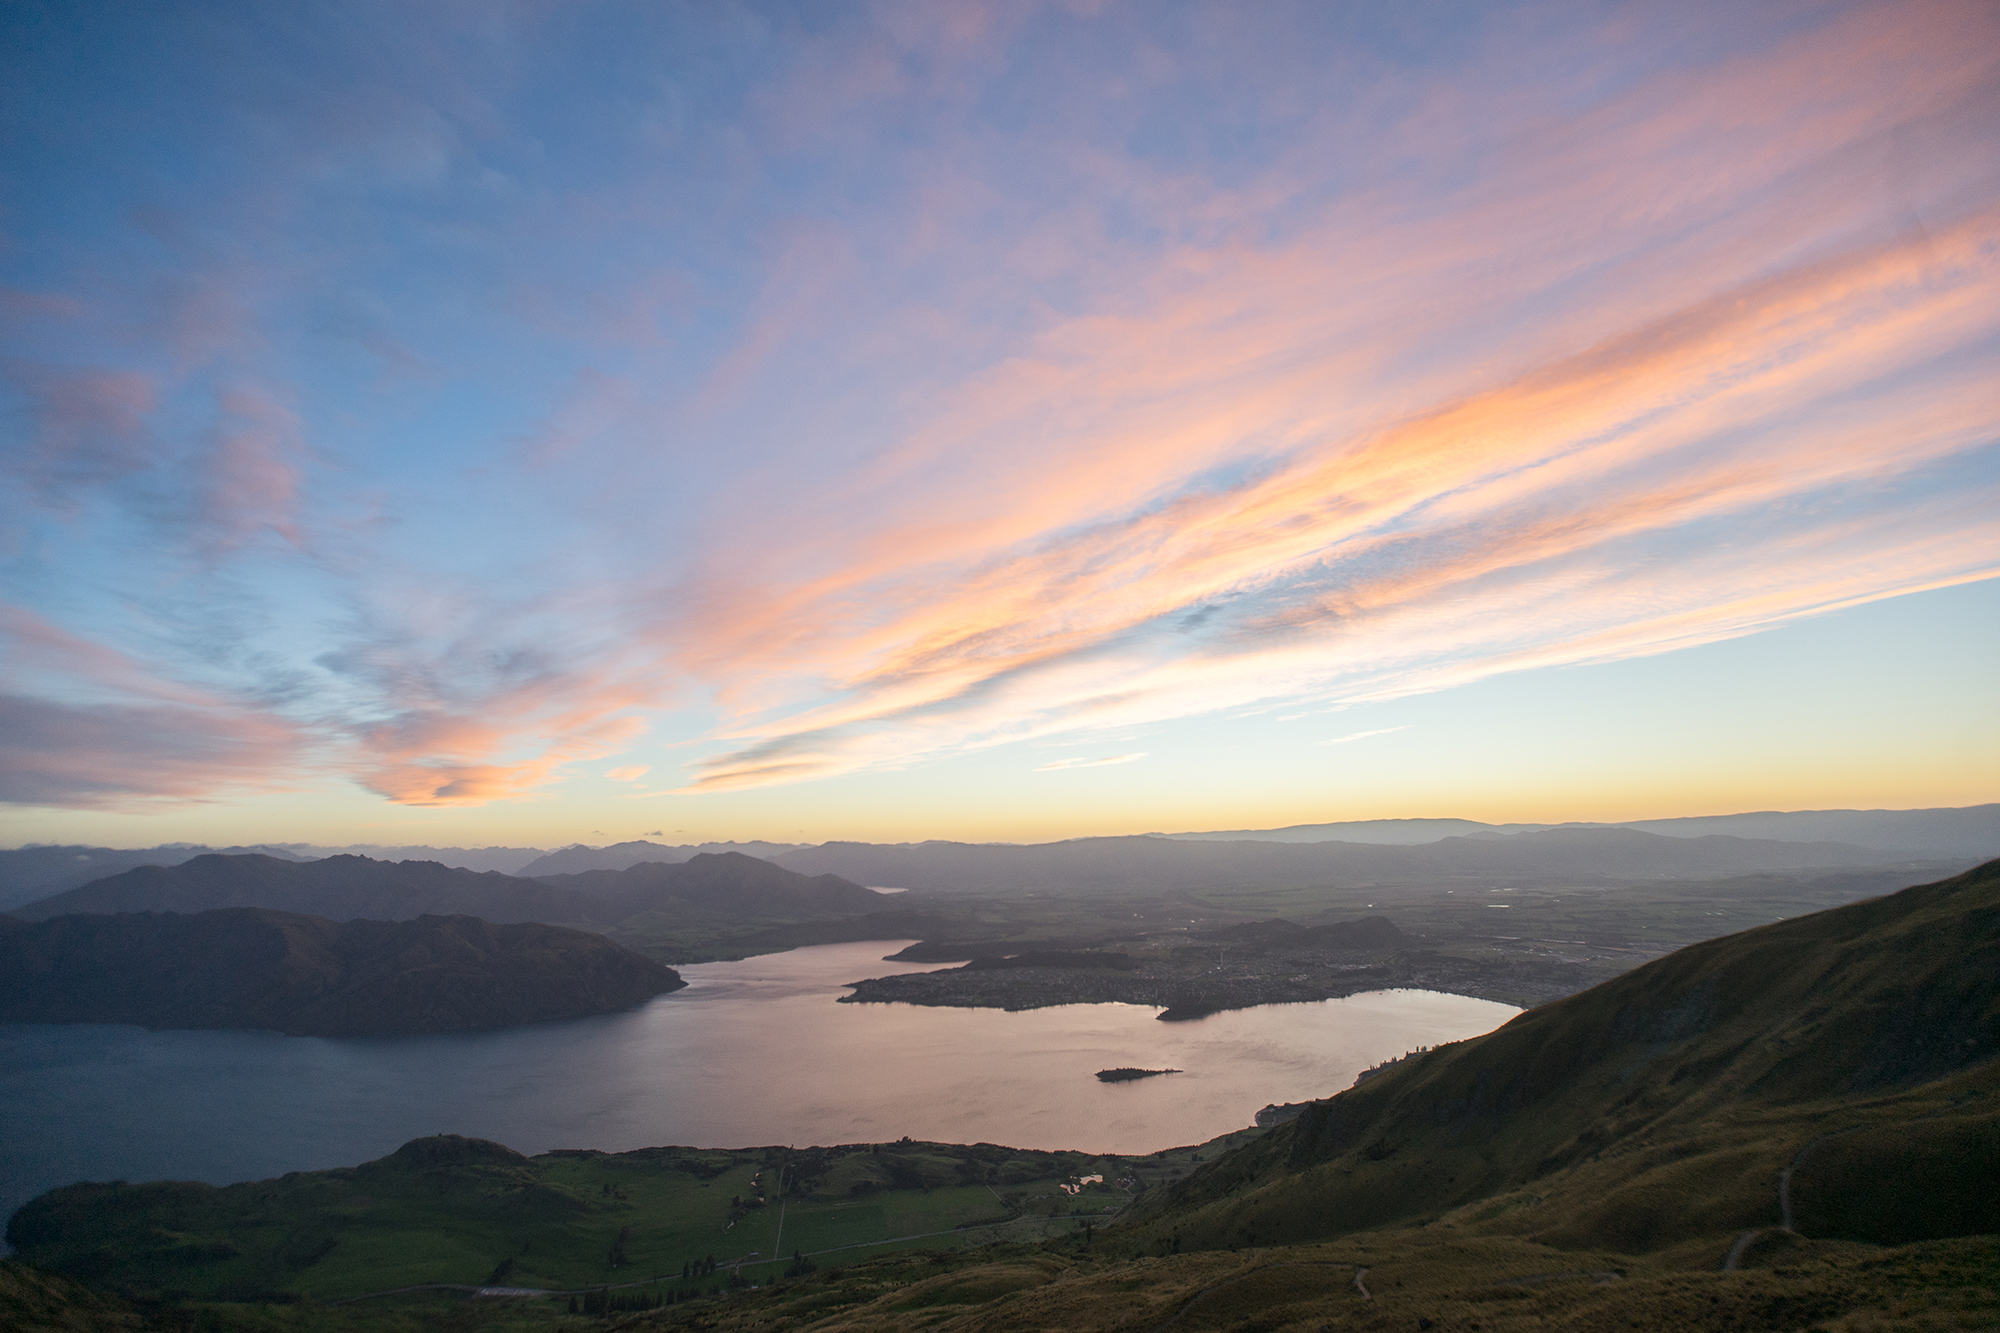 10 Road Tripping New Zealand with Marvin Kuhr - FilterGrade